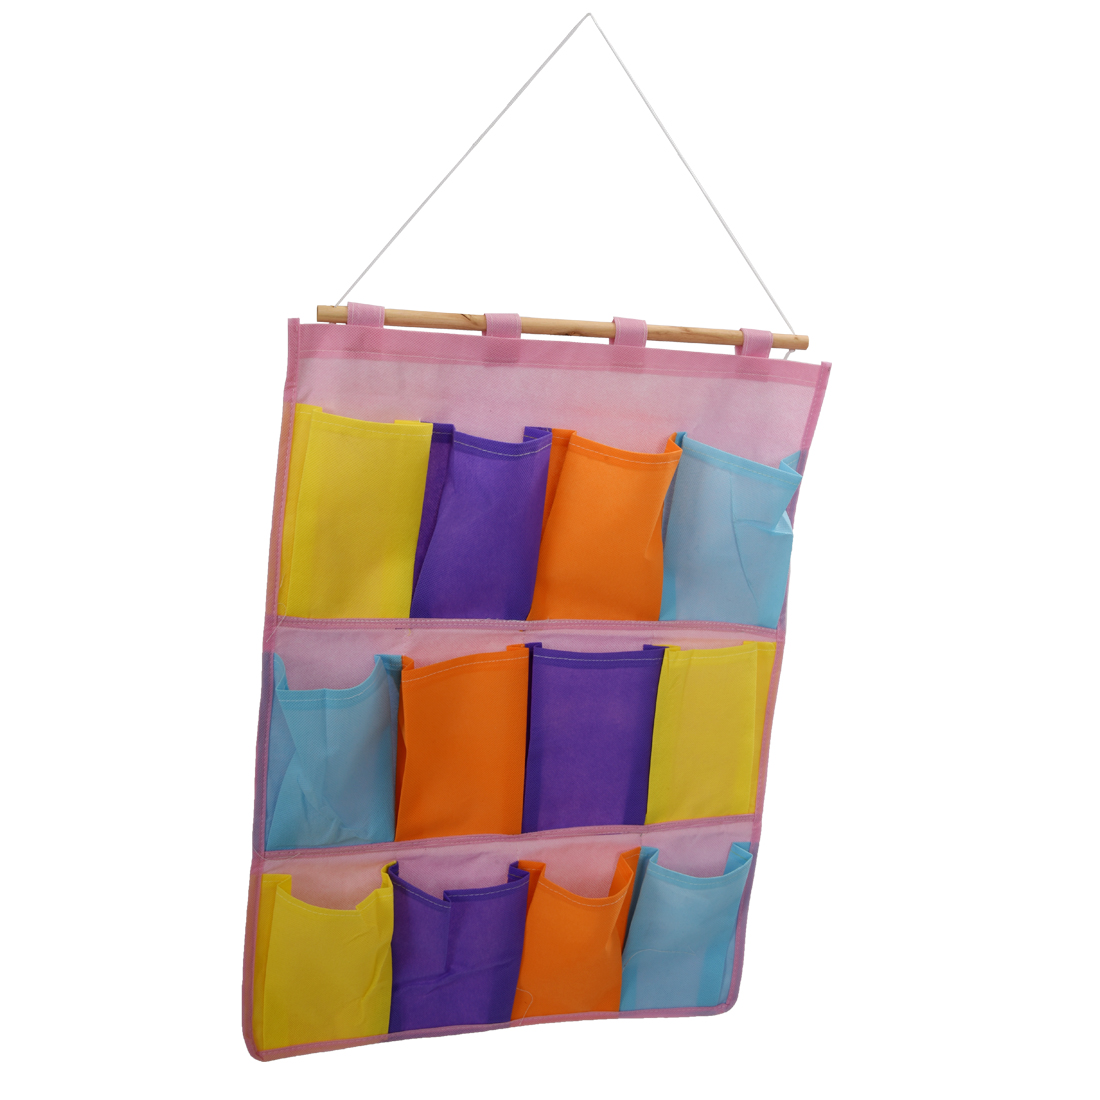 HGHO-Colorful Wall Door Cloth Hanging Storage Bags Case Pocket Home Organization